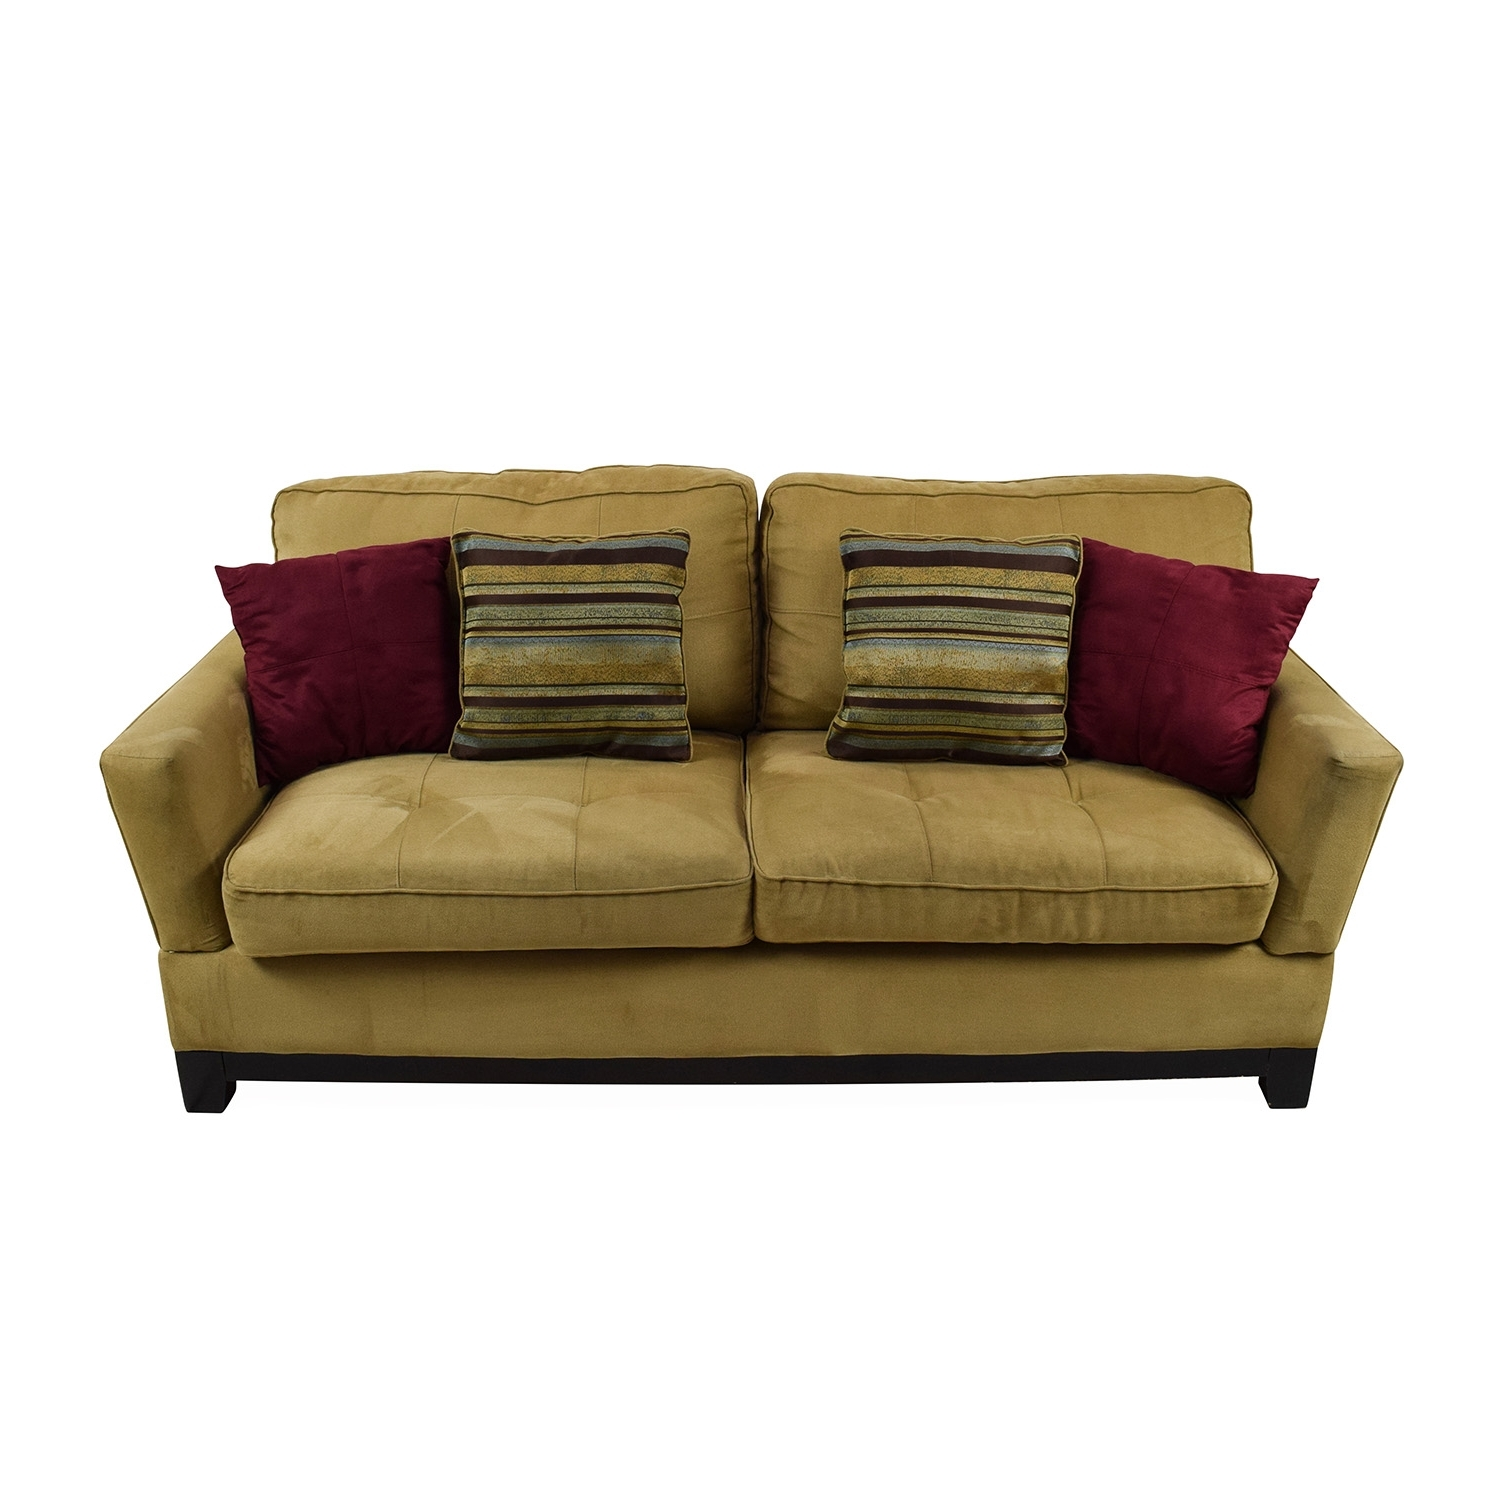 [%78% Off – Jennifer Convertibles Jennifer Convertibles Tan Sofa / Sofas Inside Well Known Jennifer Sofas|Jennifer Sofas Throughout Most Popular 78% Off – Jennifer Convertibles Jennifer Convertibles Tan Sofa / Sofas|Most Recent Jennifer Sofas In 78% Off – Jennifer Convertibles Jennifer Convertibles Tan Sofa / Sofas|Well Known 78% Off – Jennifer Convertibles Jennifer Convertibles Tan Sofa / Sofas Inside Jennifer Sofas%] (View 6 of 20)